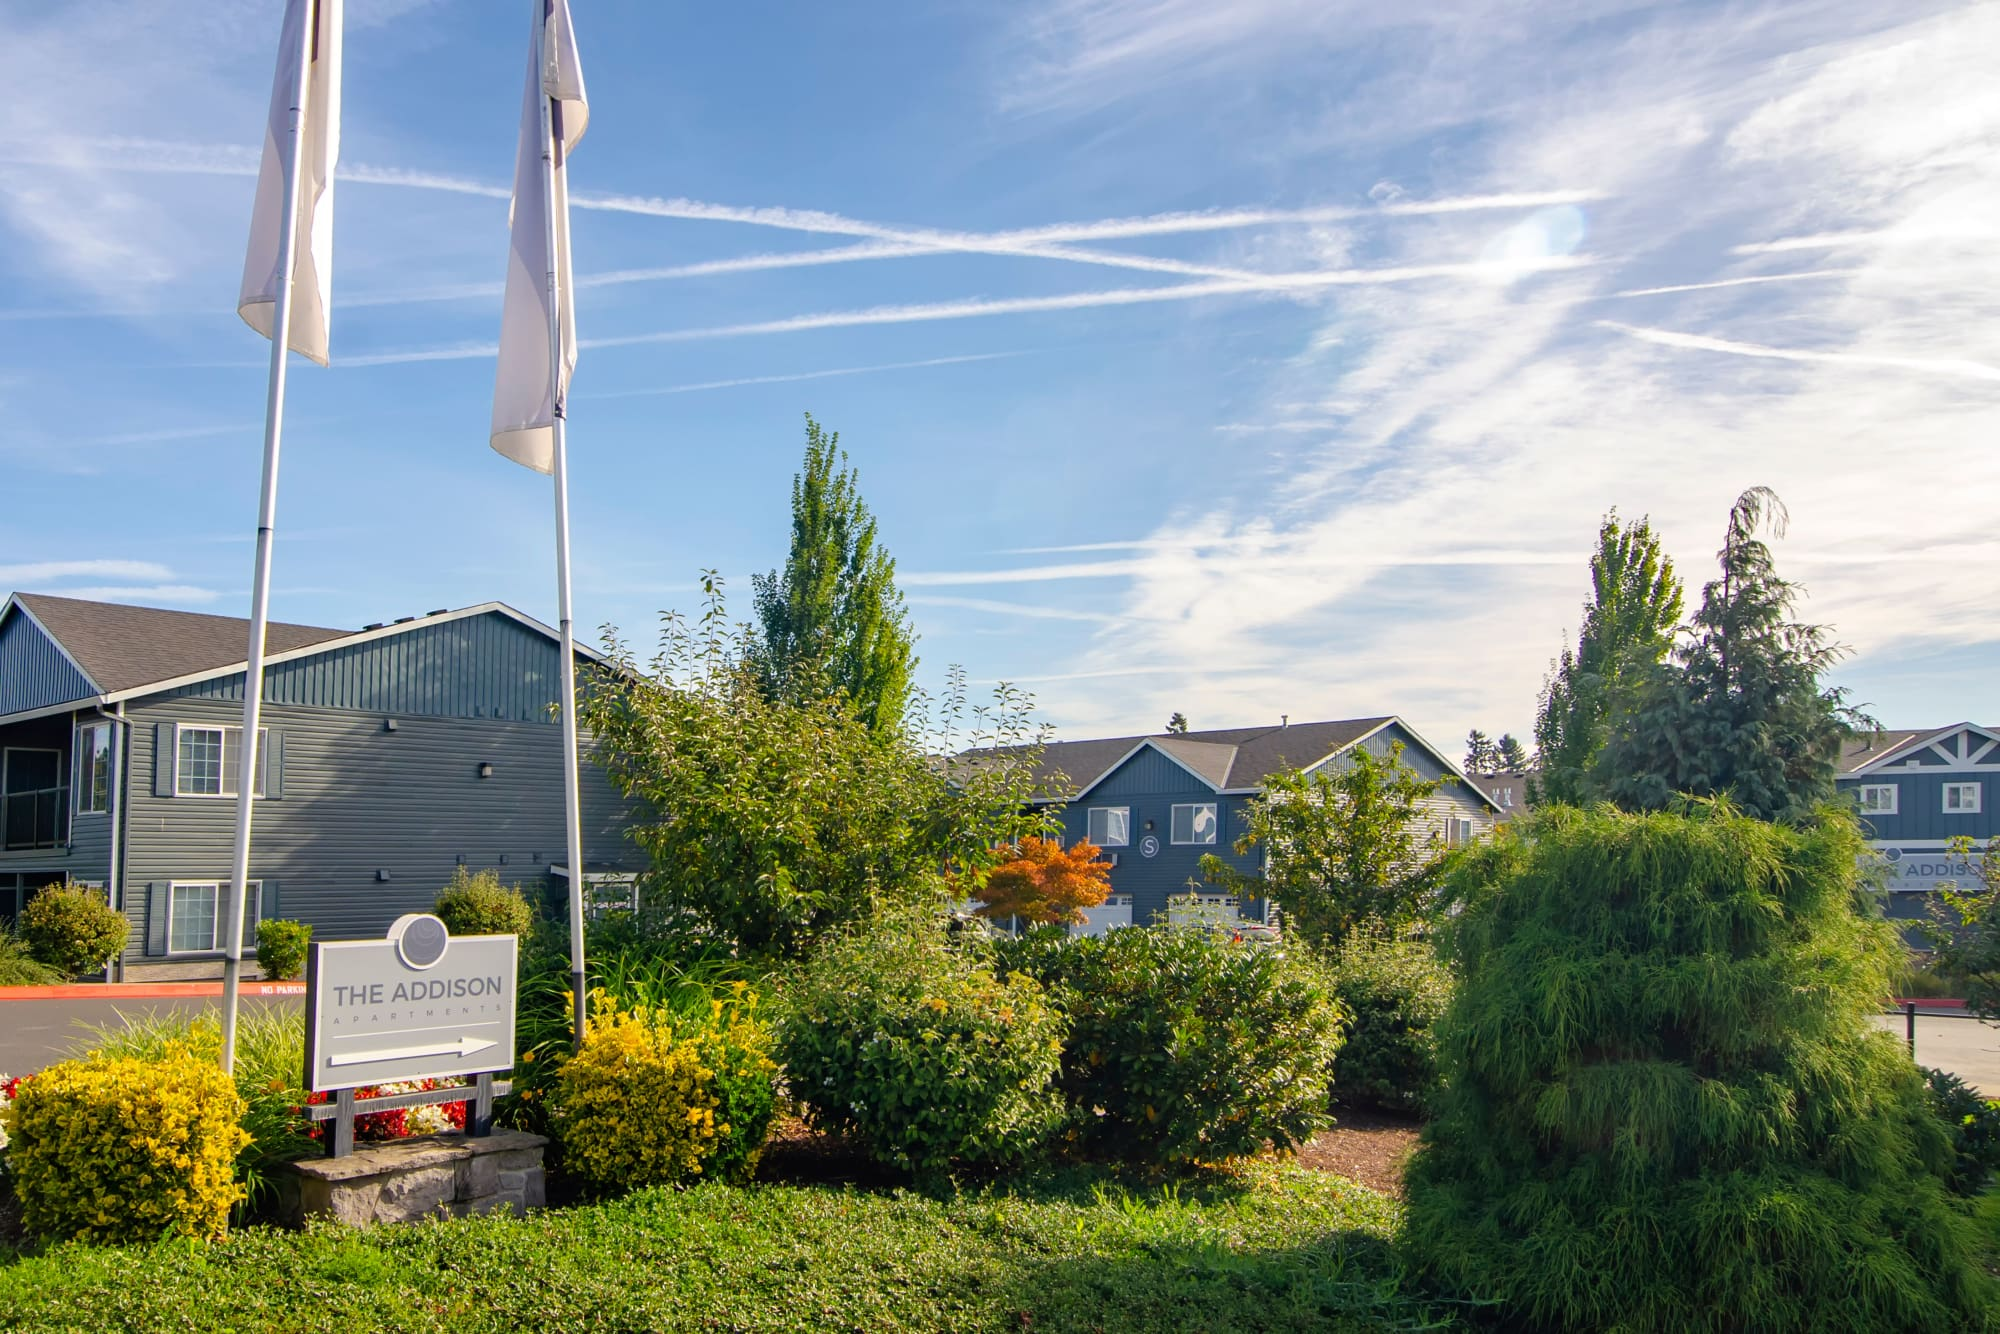 Monument skyline at The Addison Apartments in Vancouver, Washington